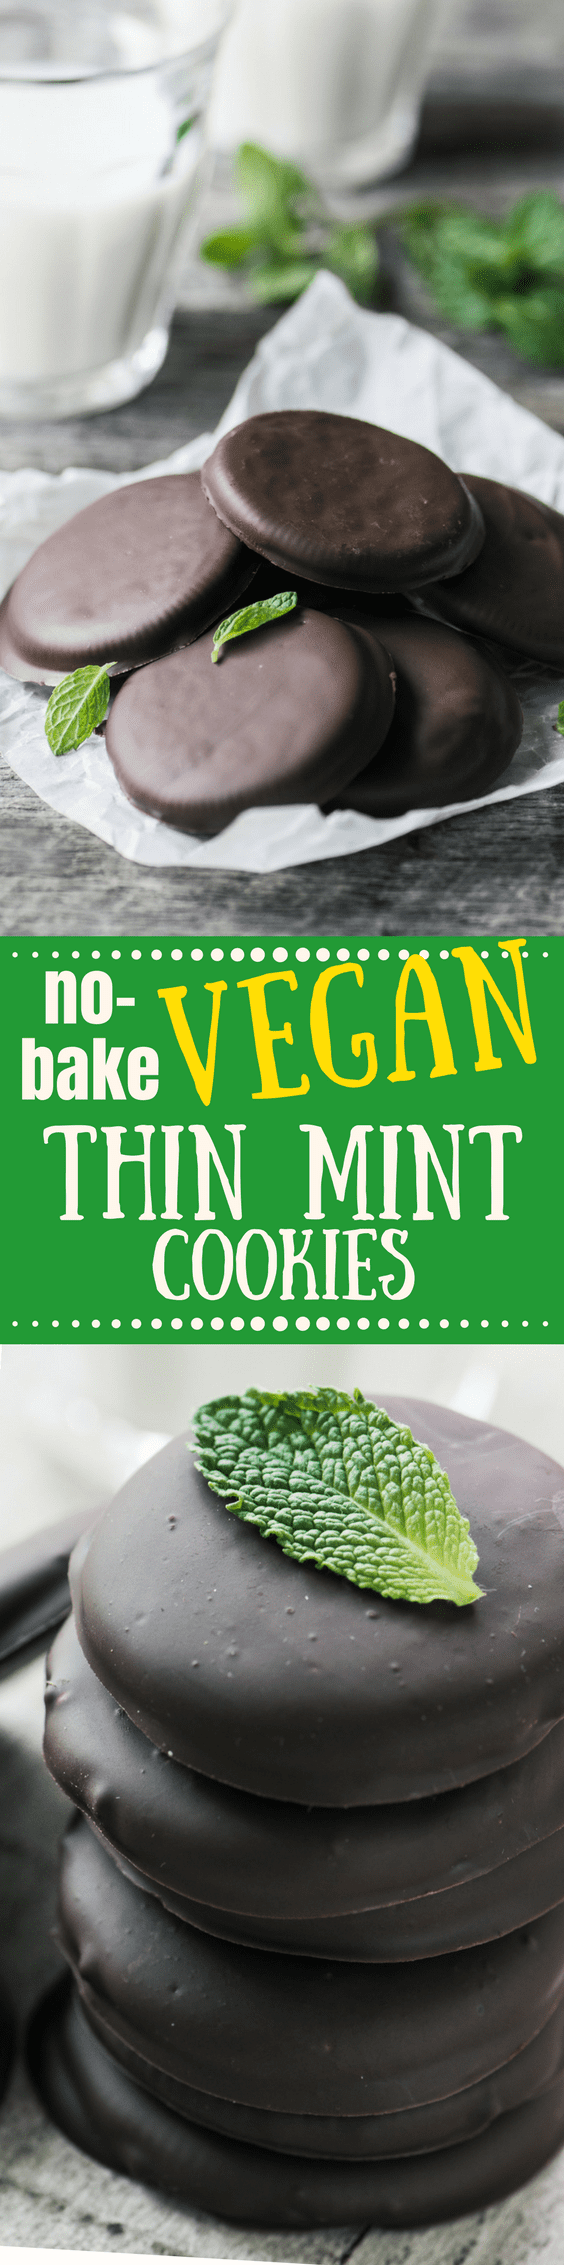 My No Bake Vegan Thin Mint Cookies are crisp chocolate cookies thickly covered in minty chocolate ~ these are the easiest cookies you'll ever make, and they're hopelessly addictive! |cookies | copy cat Girl Scout cookies | no bake cookies | dessert | Peppermint | Chocolate cookies